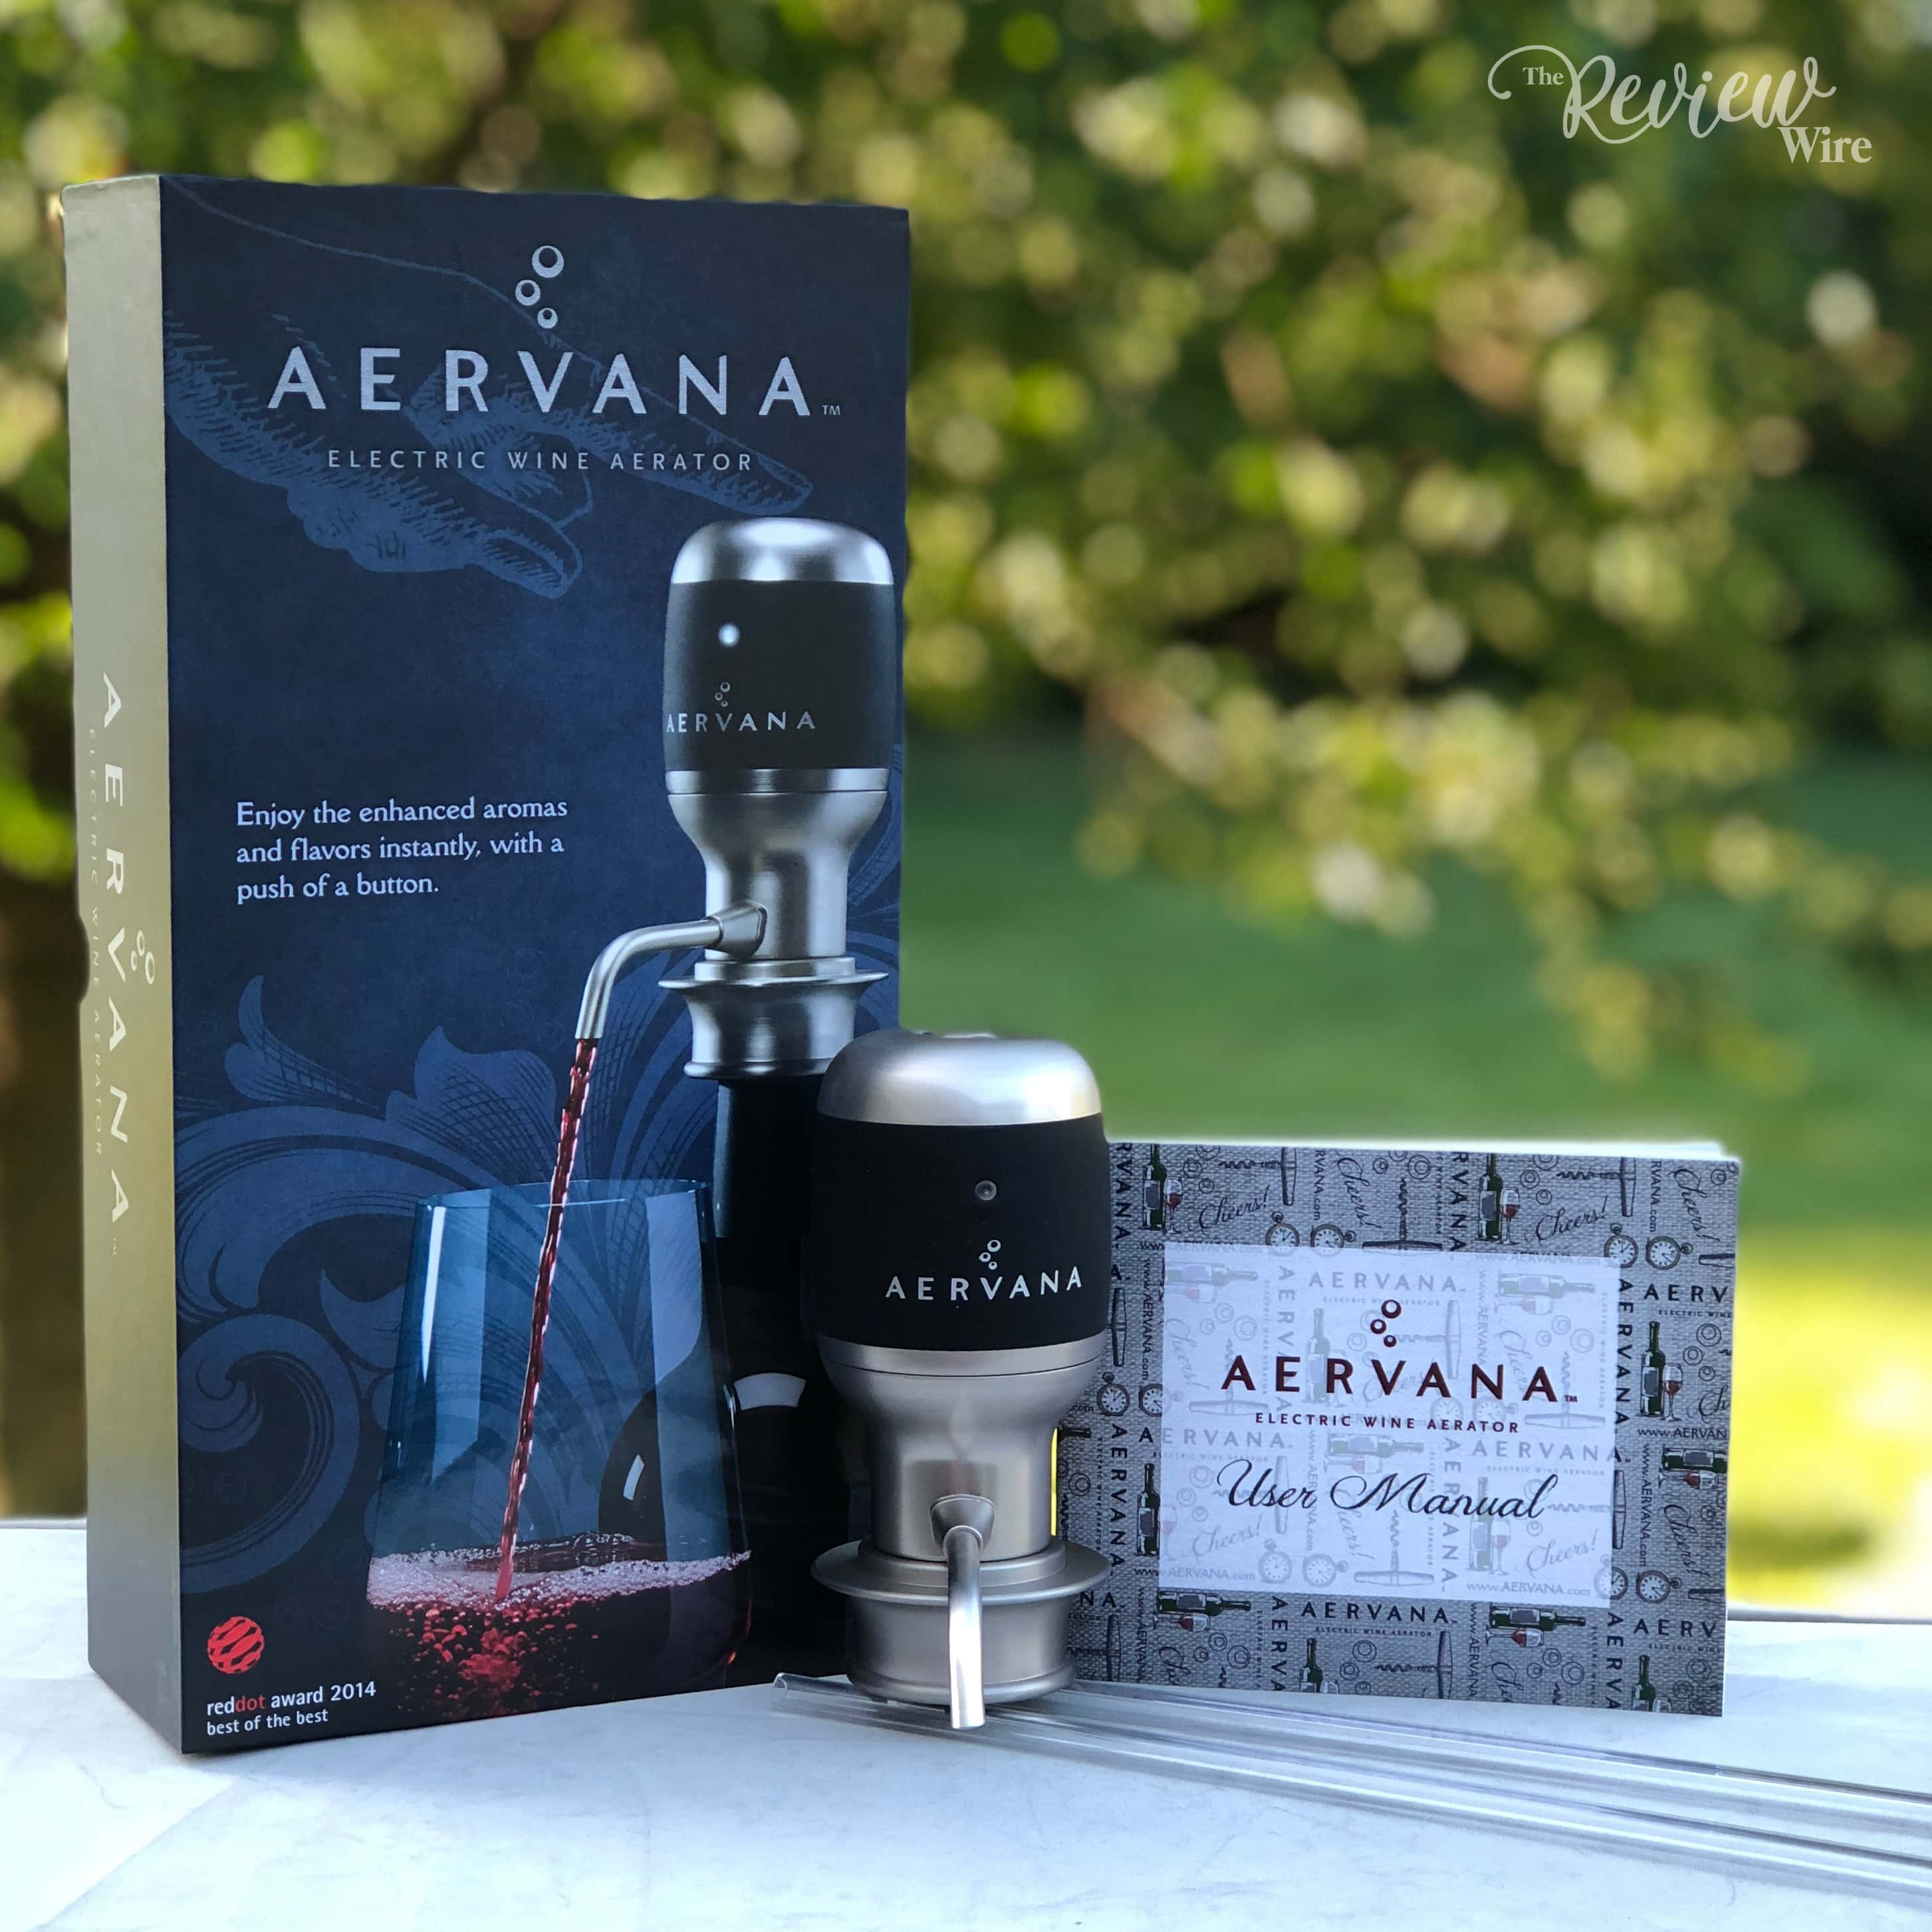 Aervana One-Touch Electric Wine Aerator